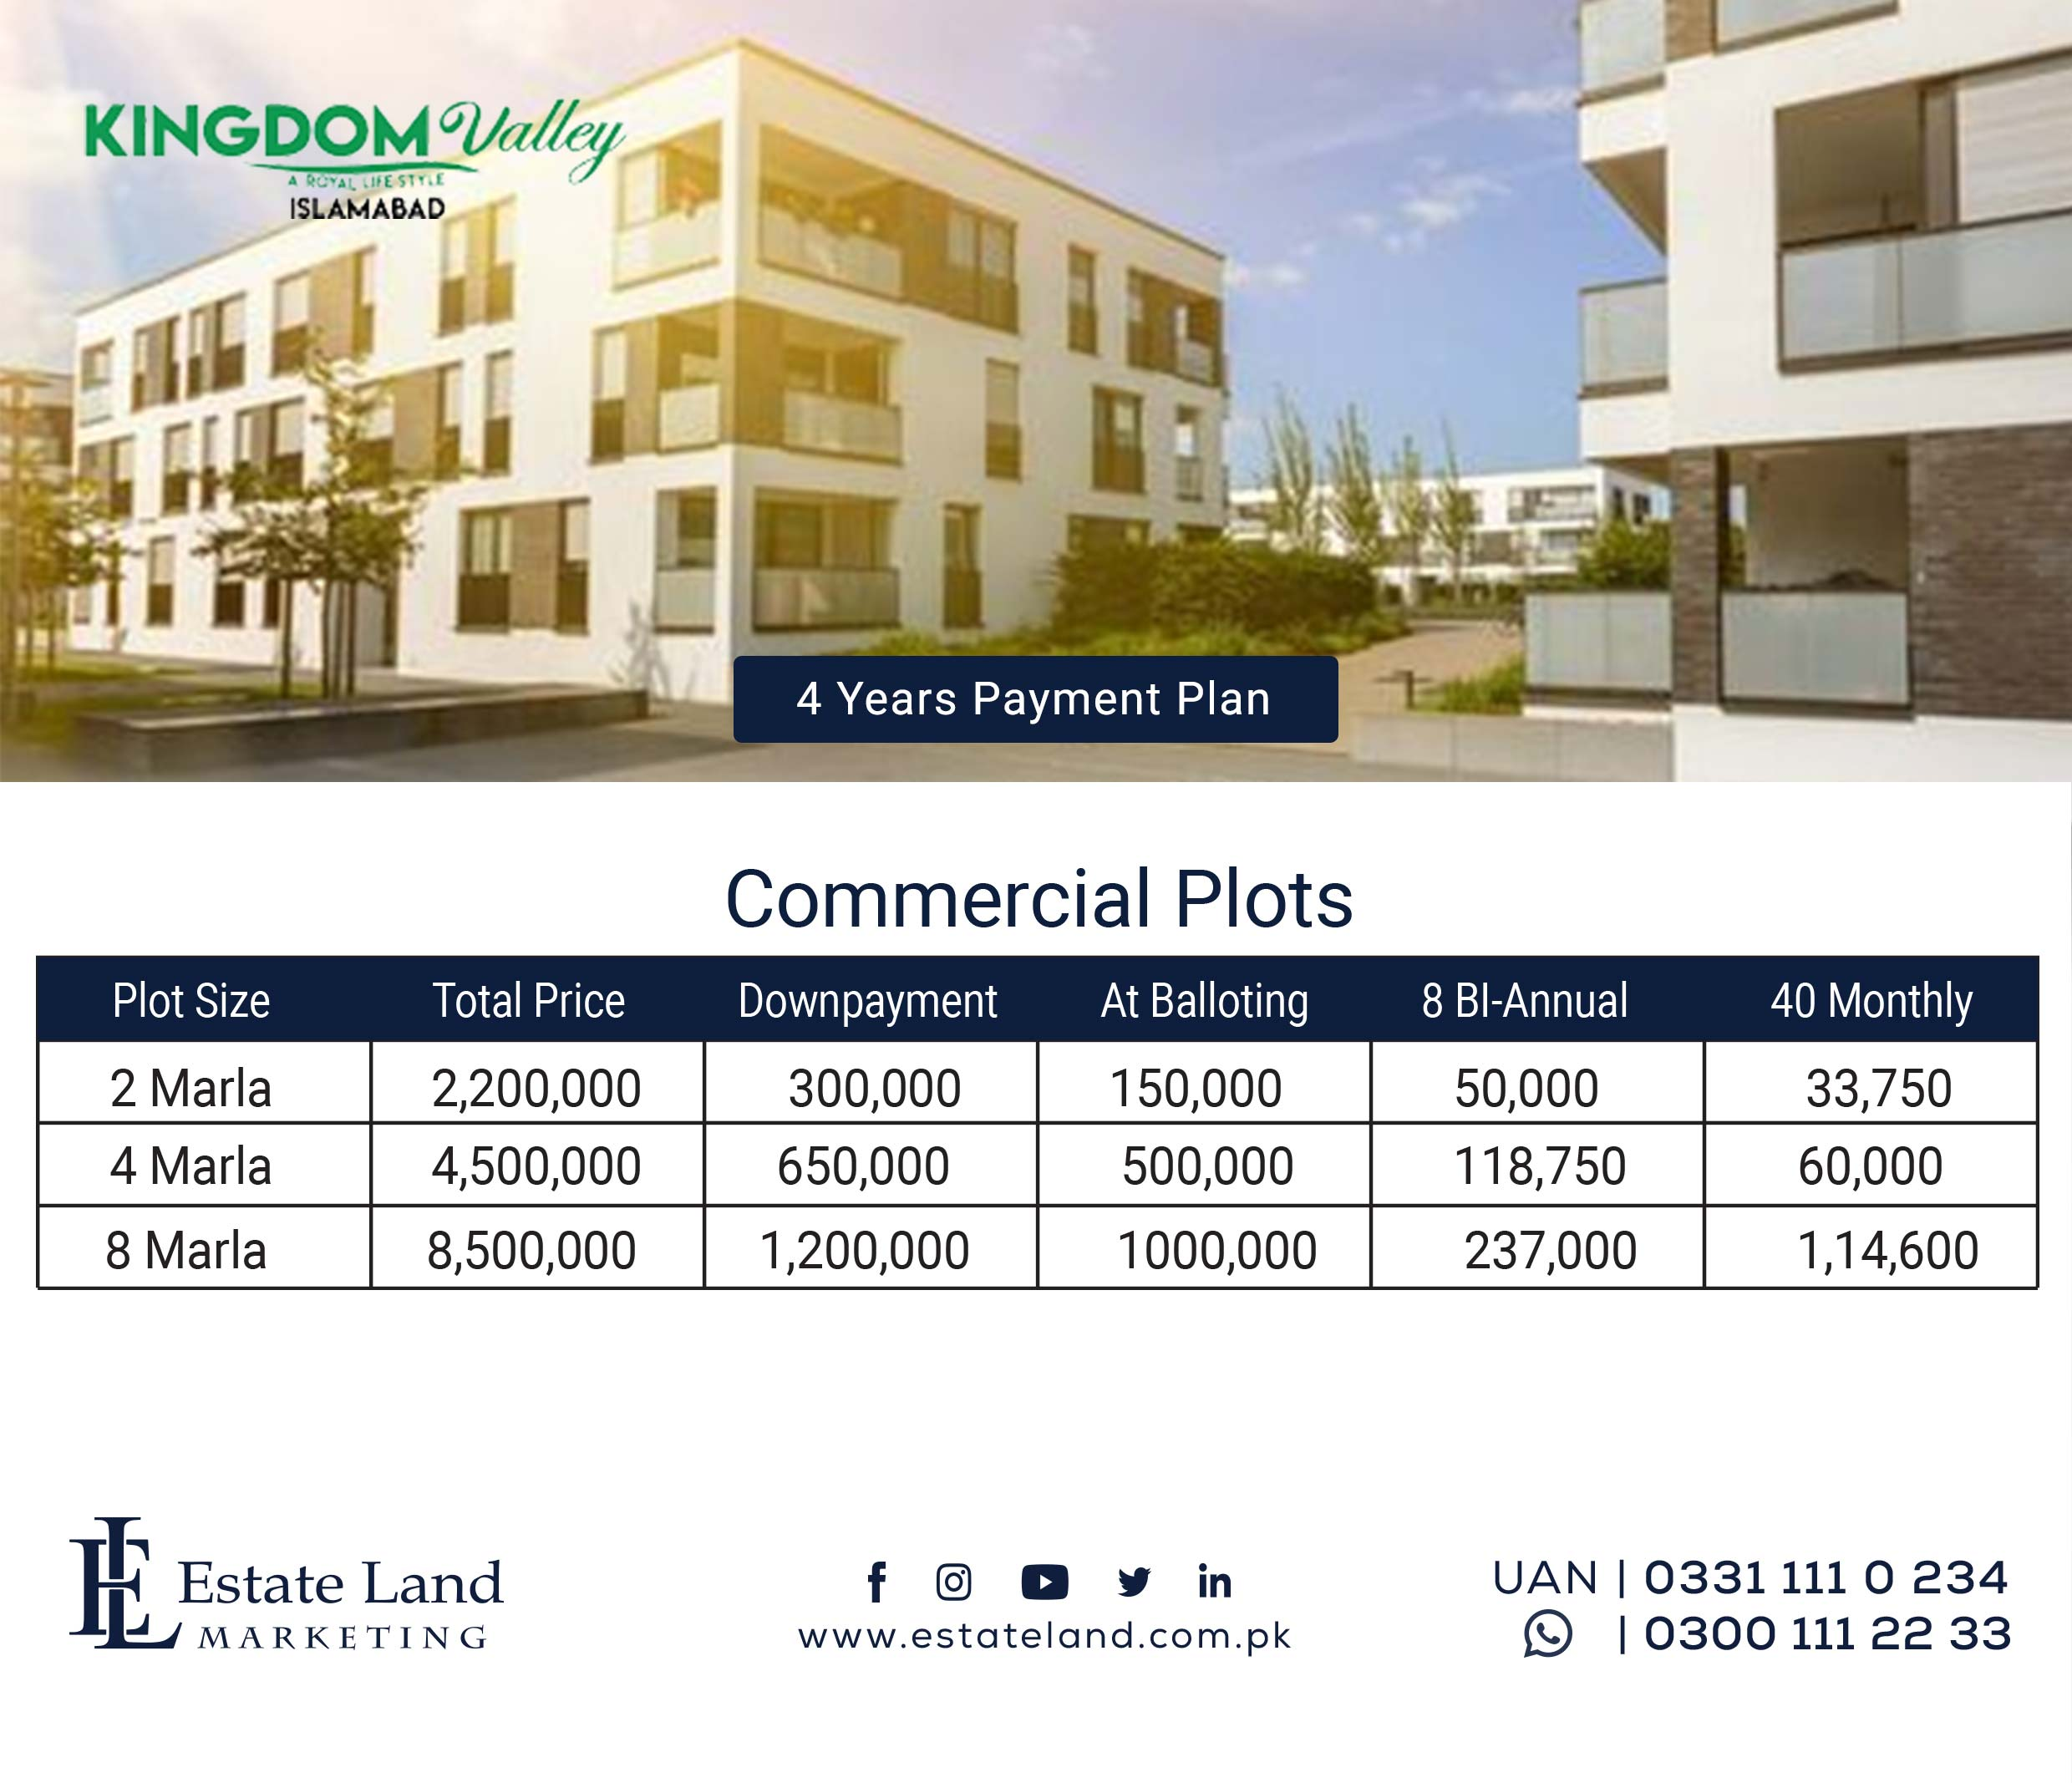 Commercial Payment Plan Kingdom Valley Islamabad